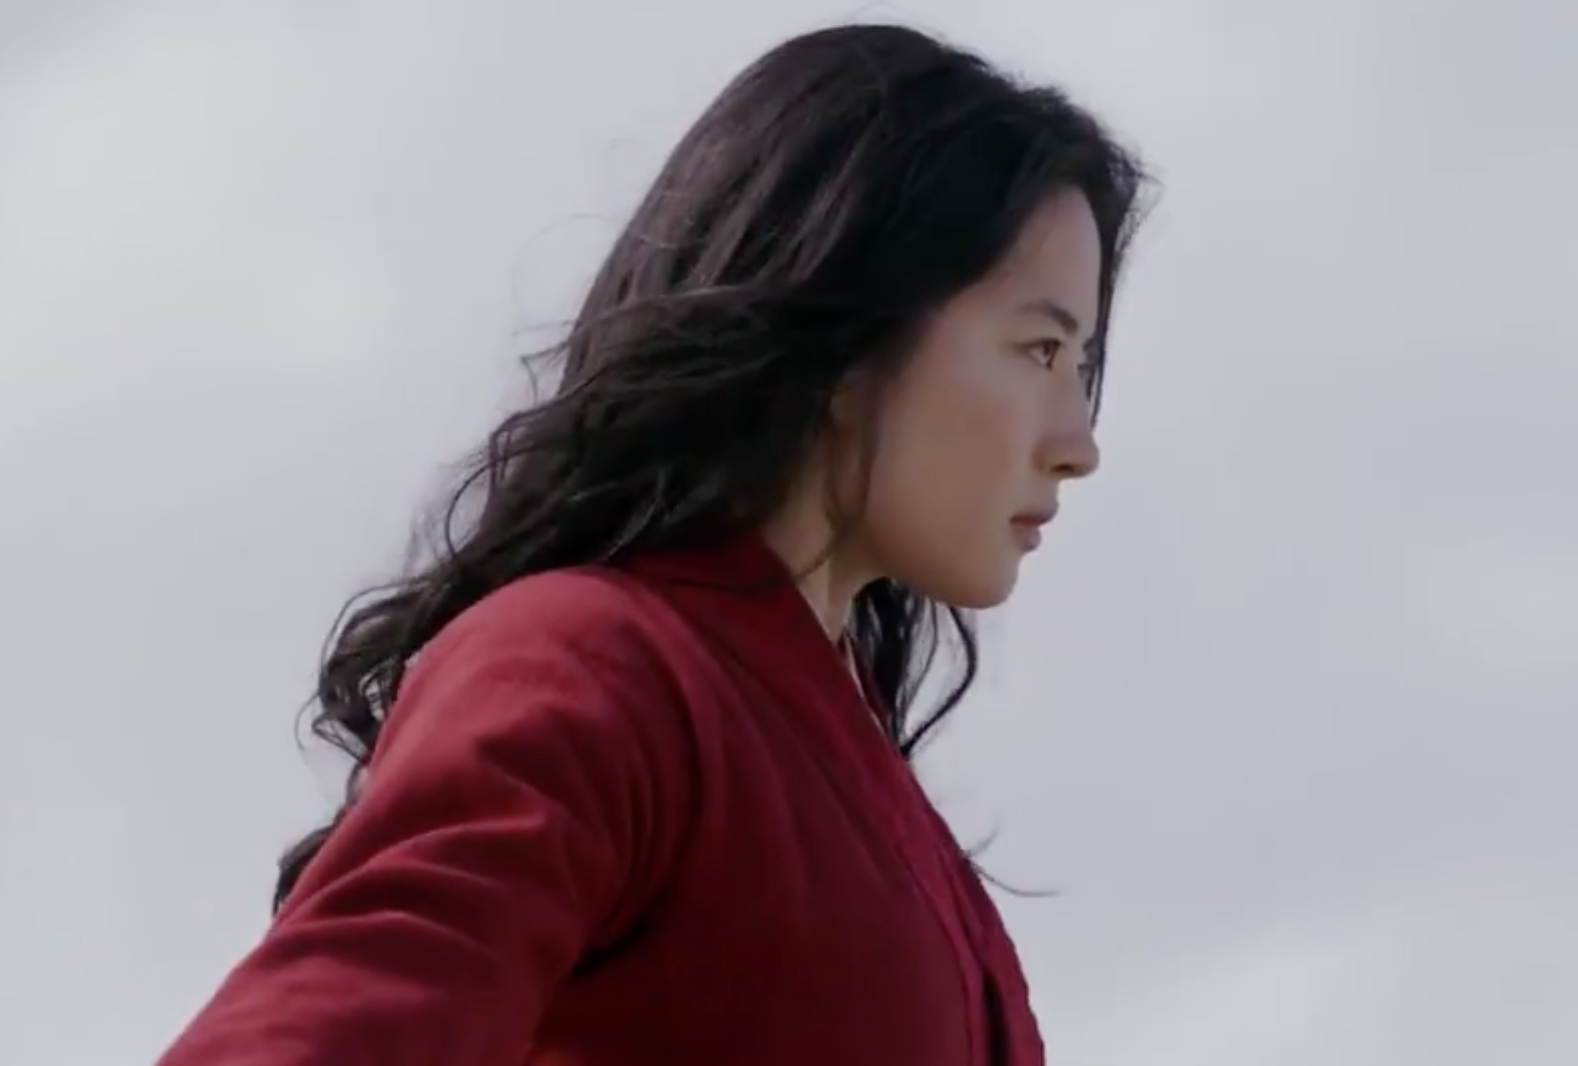 Mulan Trailer Disney Reveals First Look At Live Action Remake Starring Liu Yife The Independent The Independent